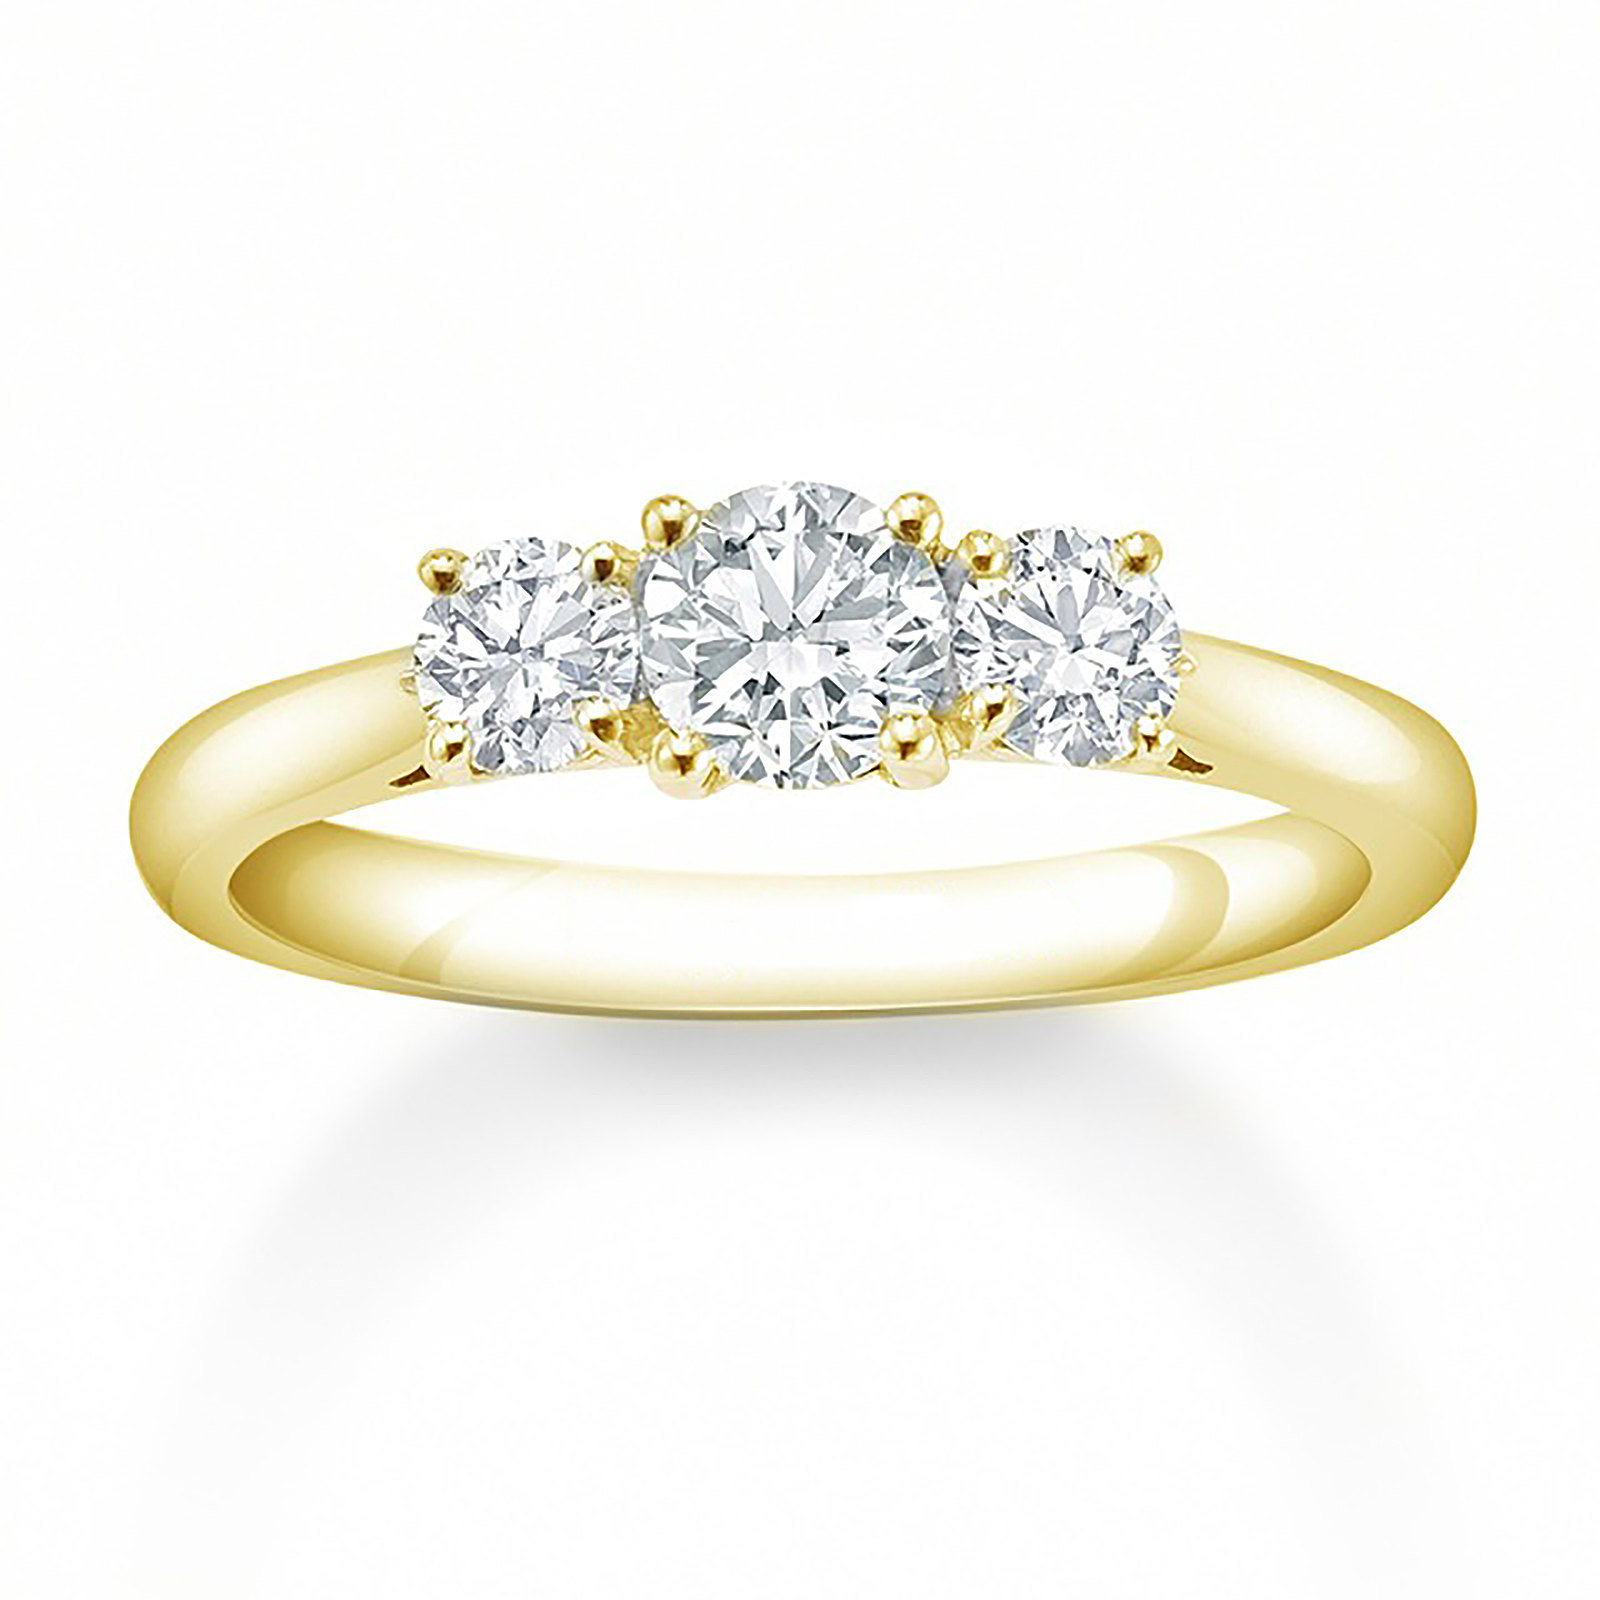 ideas ringcaroline throughout rings brook carat karat engagement view gold wedding textured of